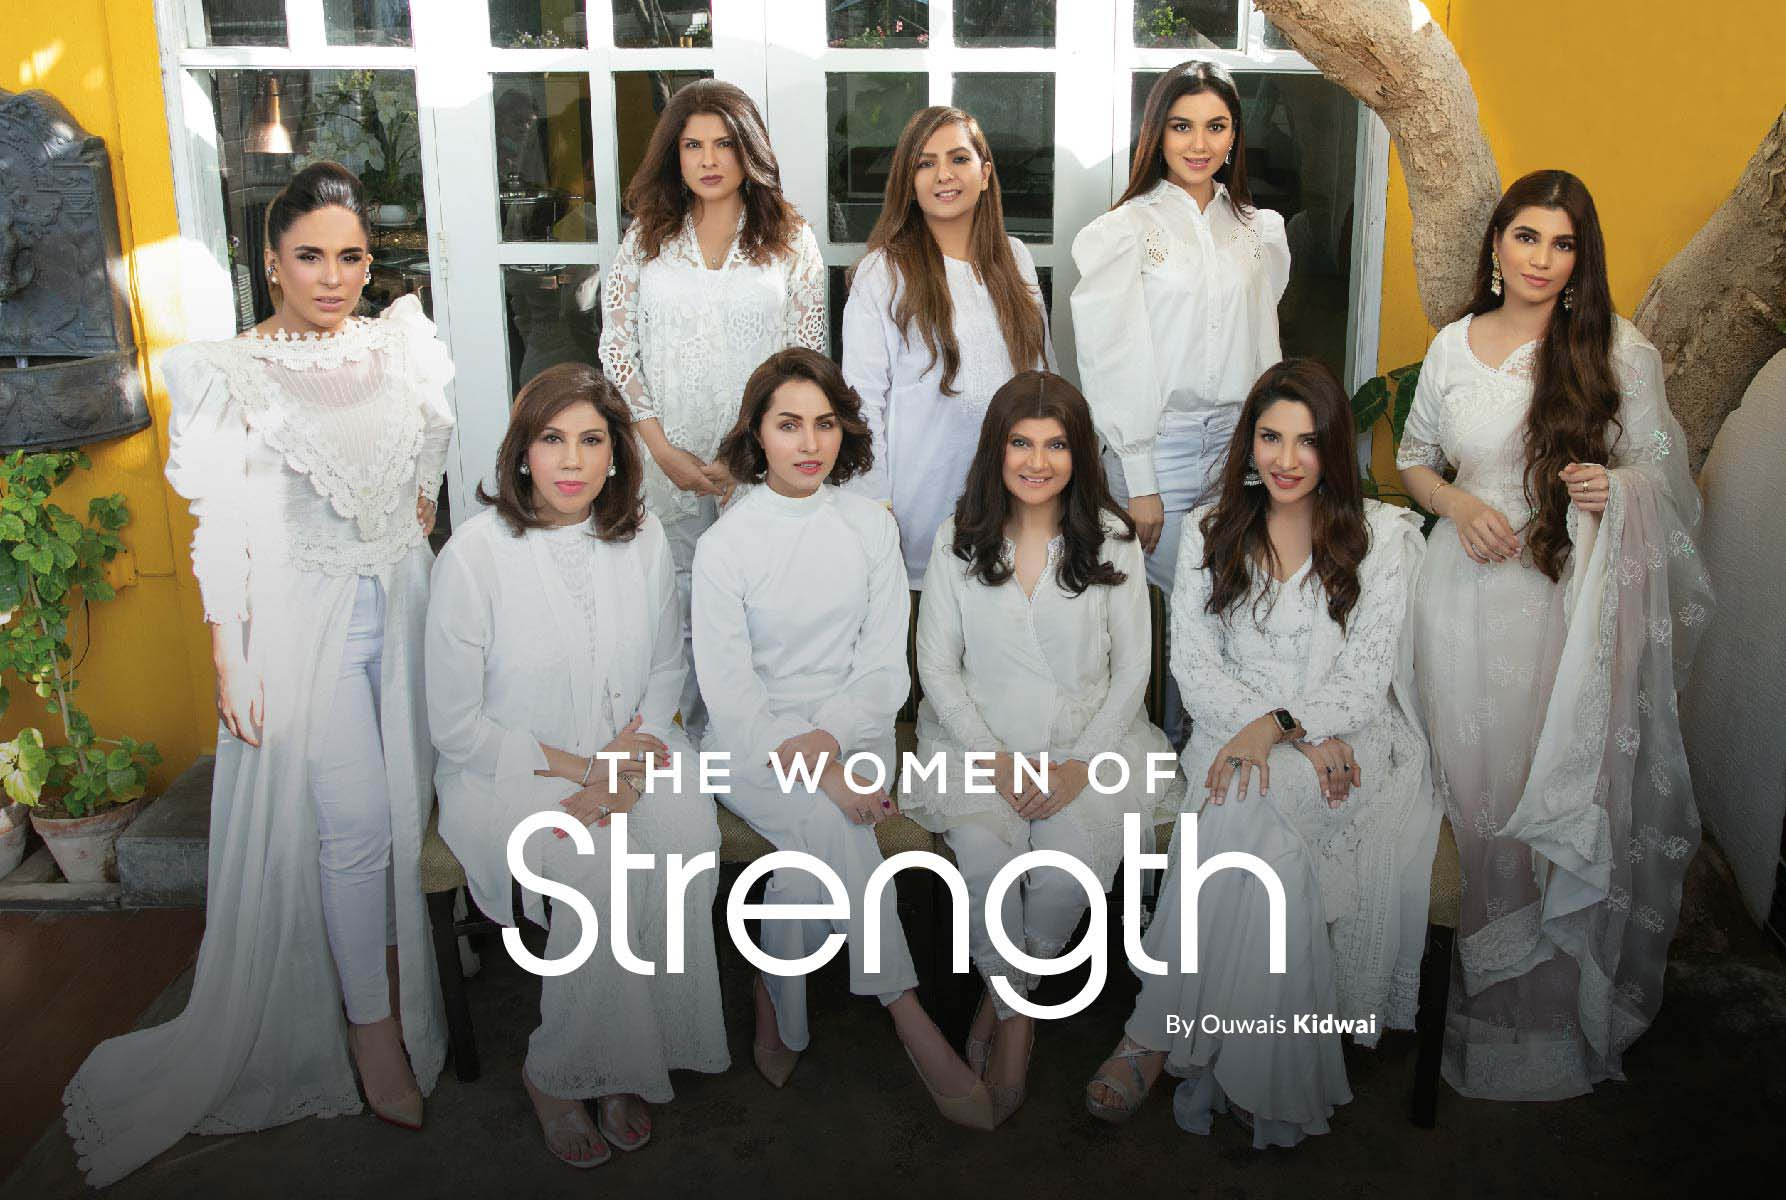 The Women of Strength